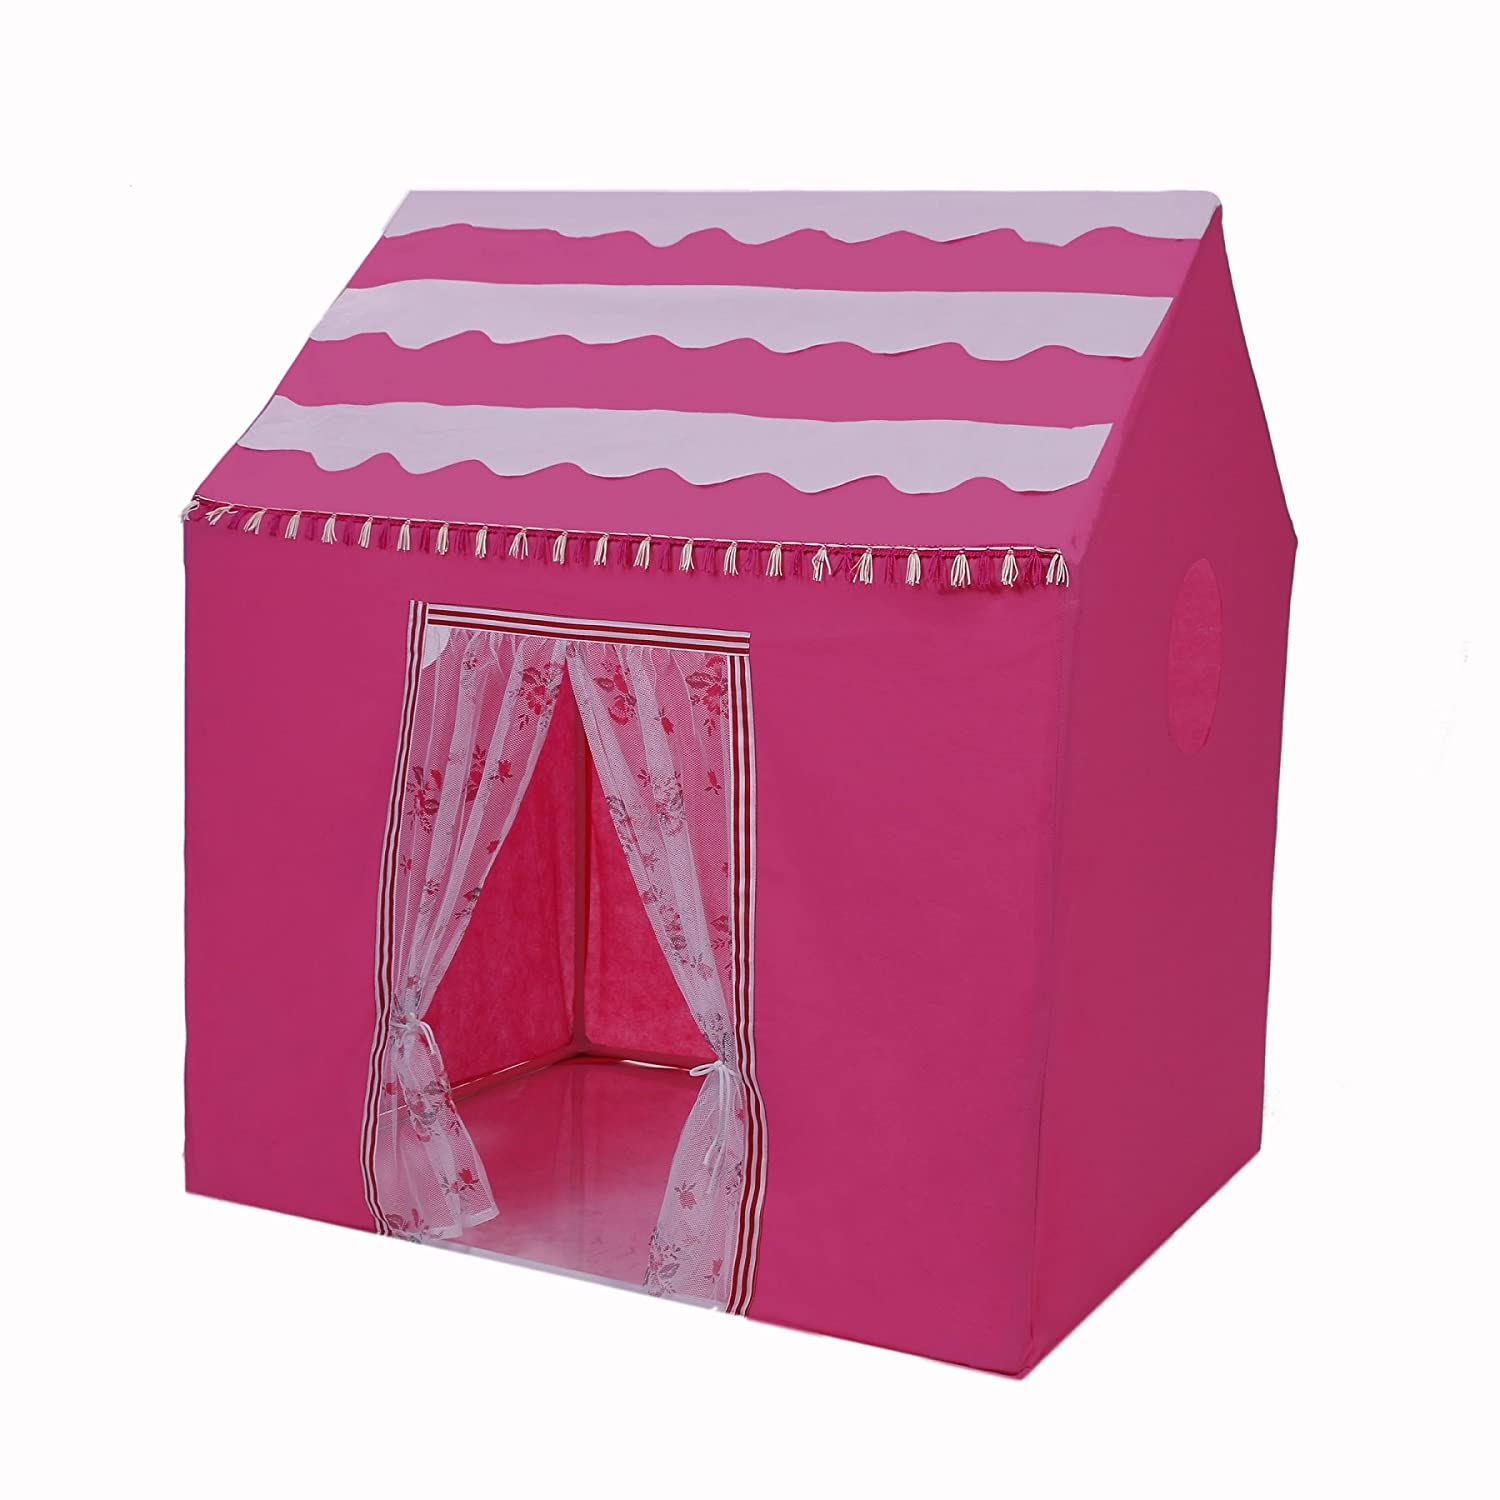 Buy Playhood Play Hood Play Tent House Online at Low Prices in India - Amazon.in  sc 1 st  Amazon India & Buy Playhood Play Hood Play Tent House Online at Low Prices in ...